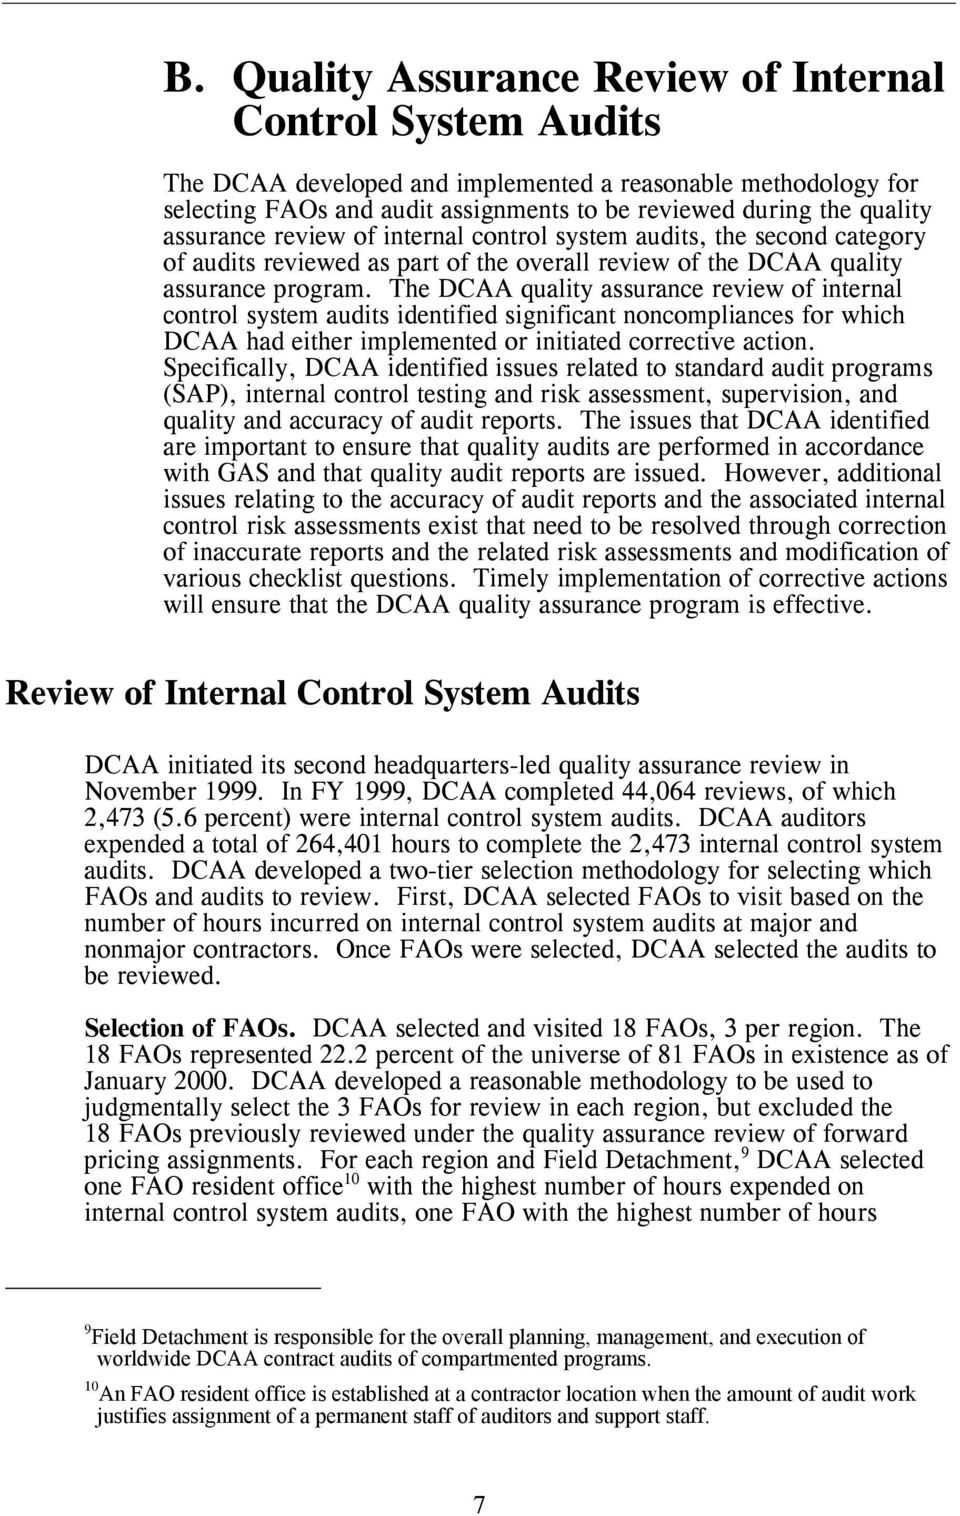 The DCAA quality assurance review of internal control system audits identified significant noncompliances for which DCAA had either implemented or initiated corrective action.